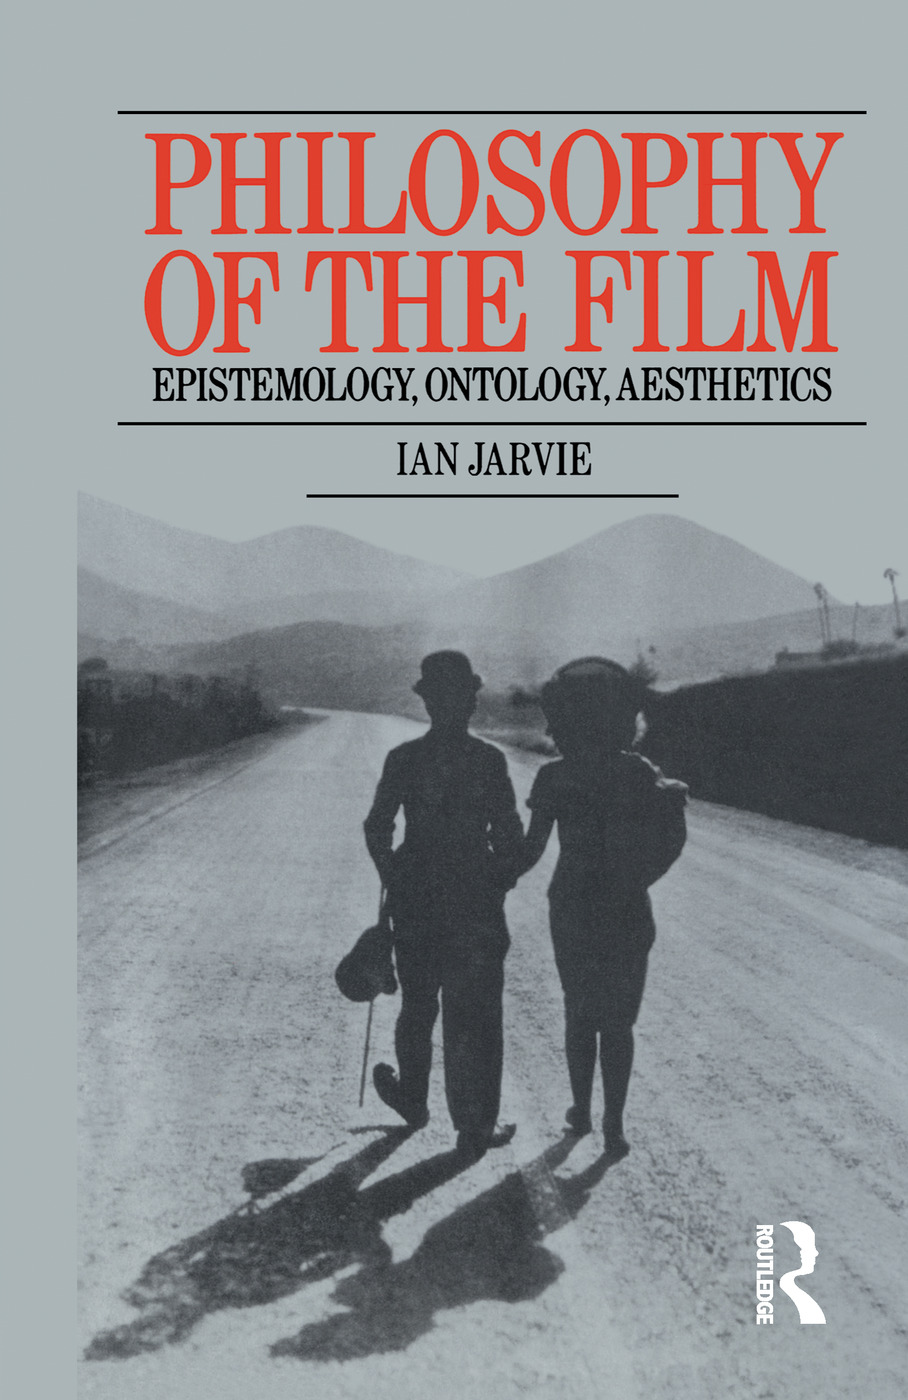 Philosophy of the Film